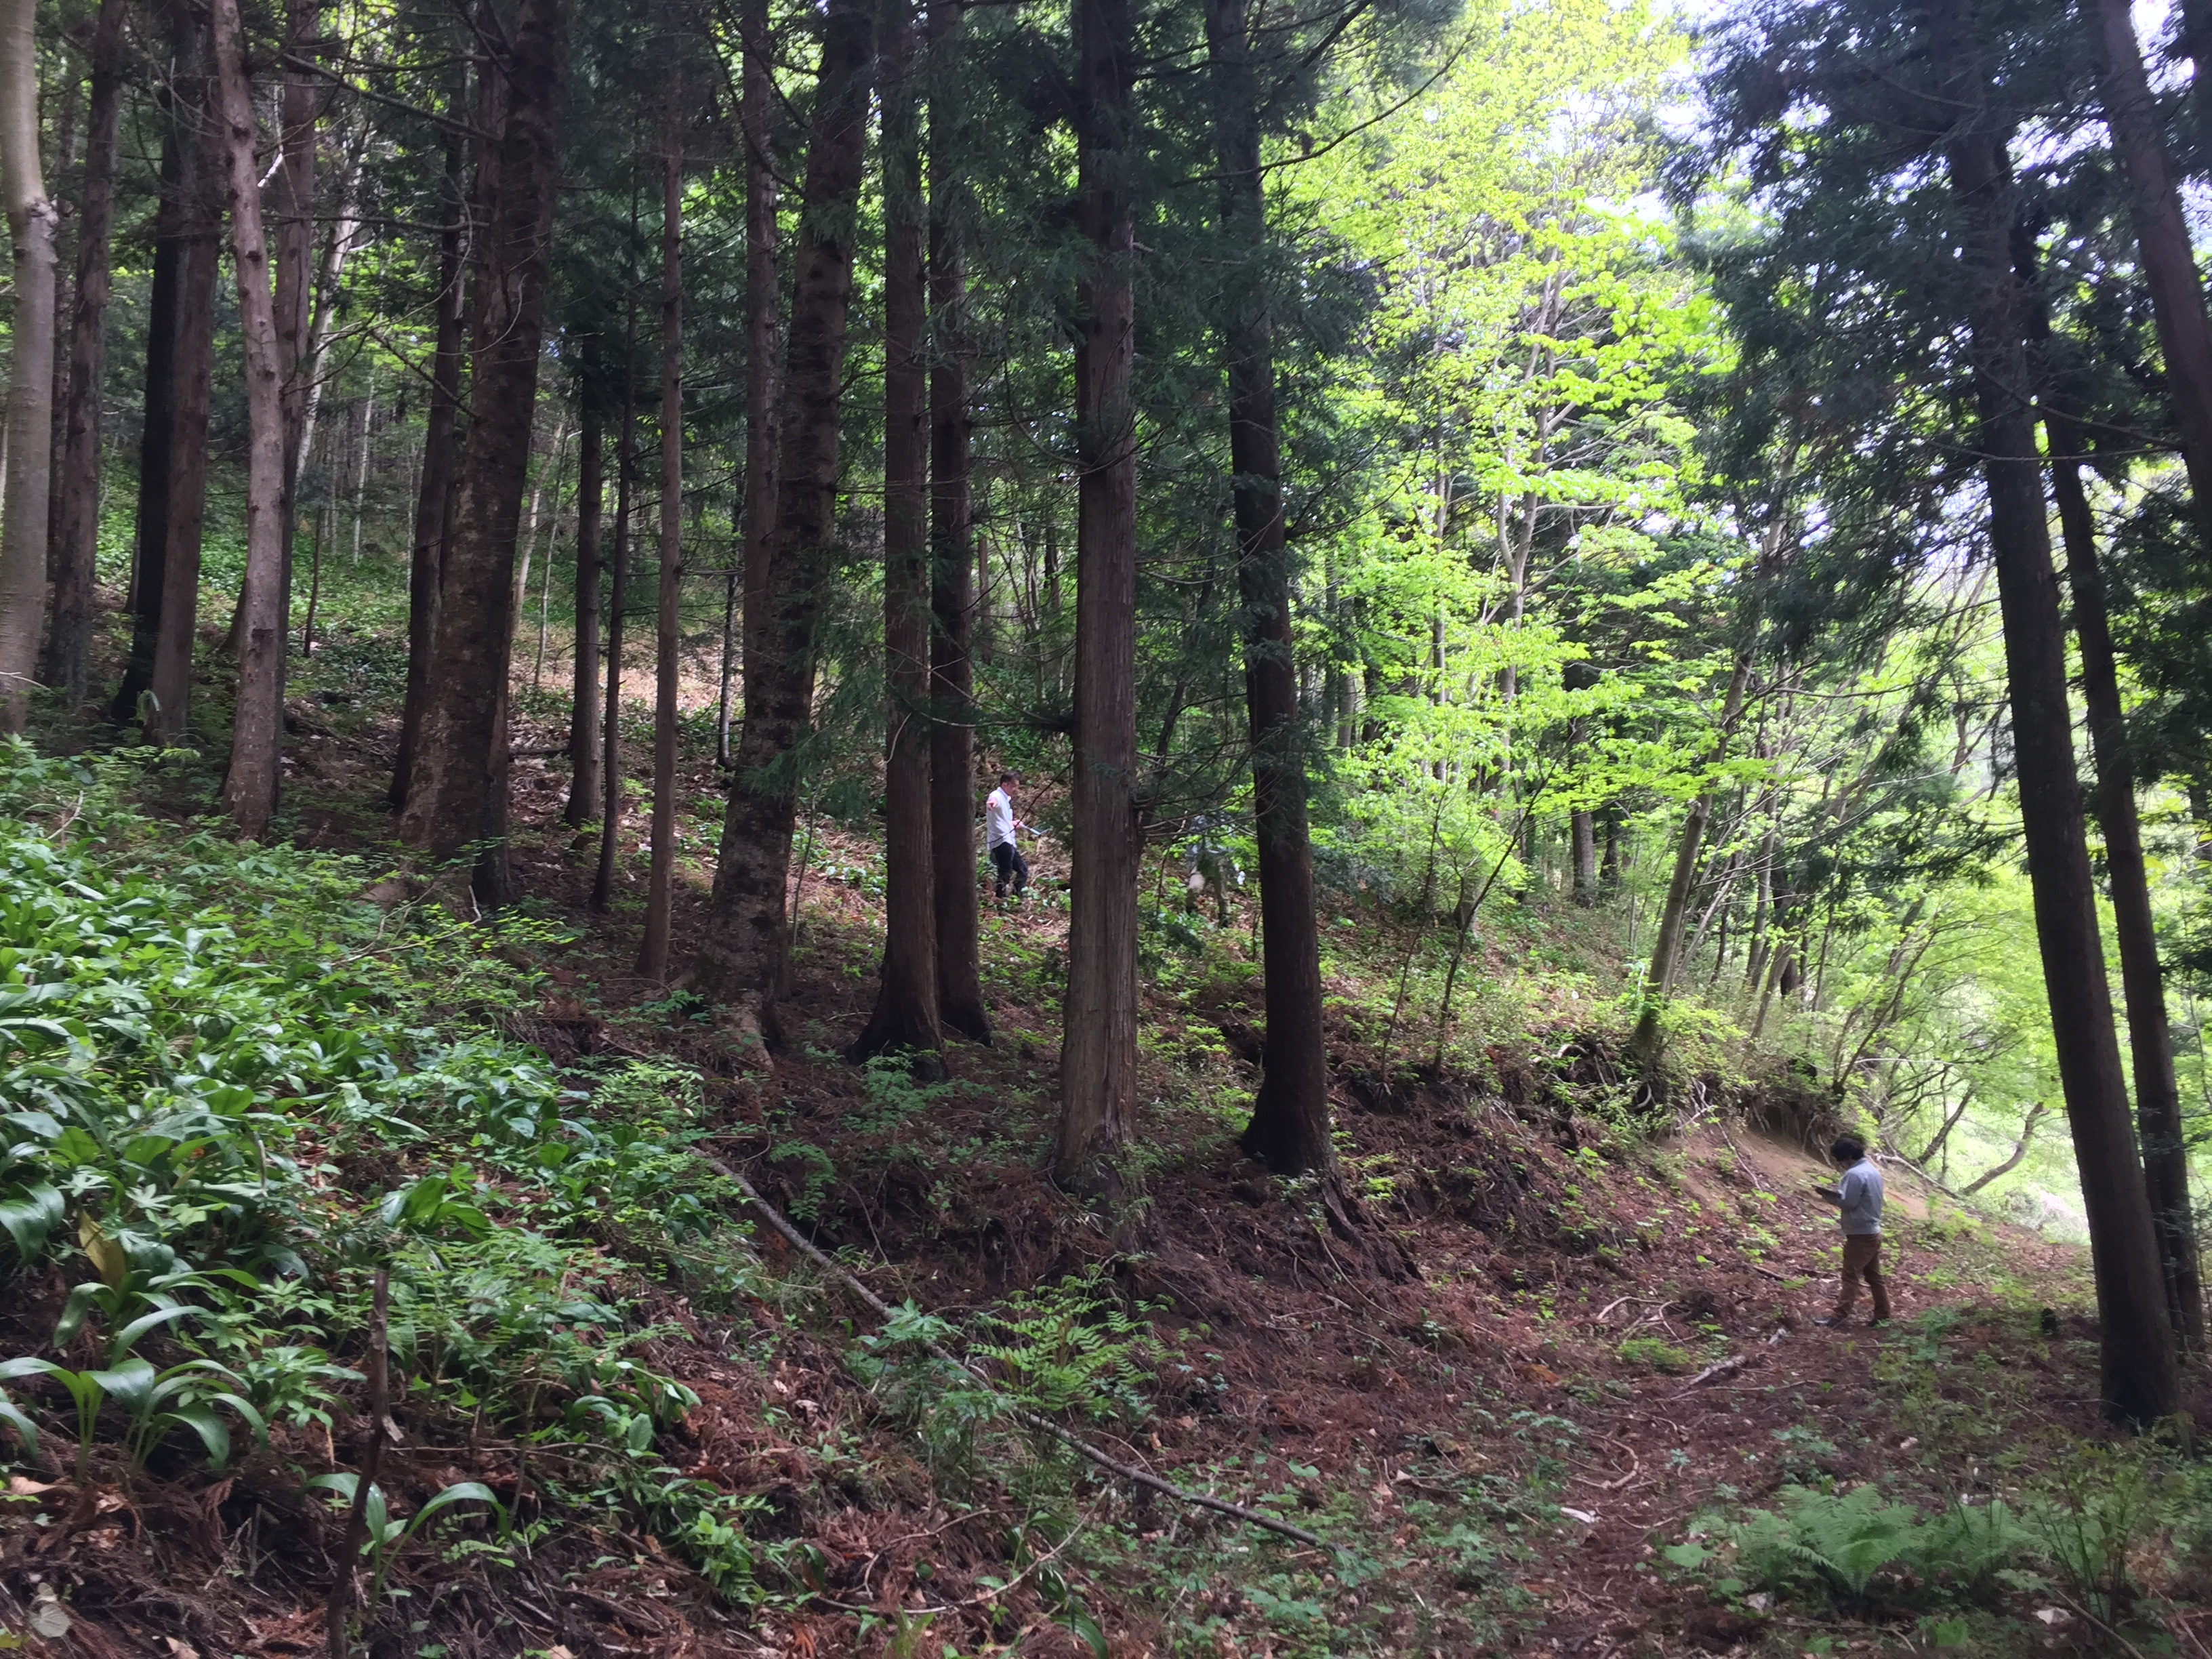 Forests in Fukushima